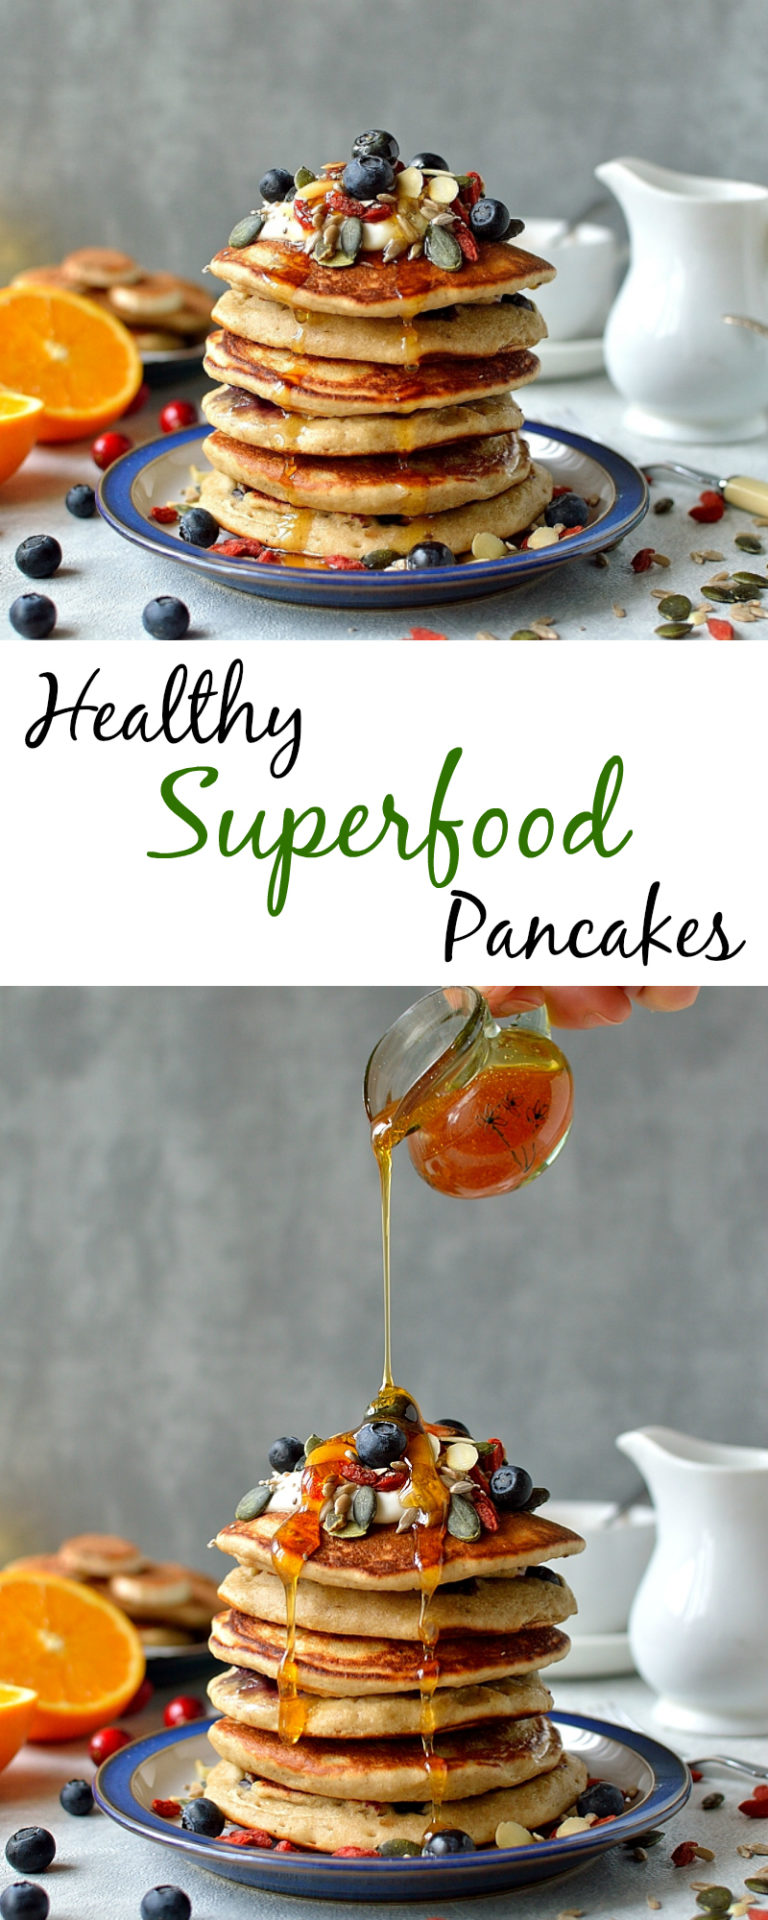 Healthy superfood pancakes delisous recipe